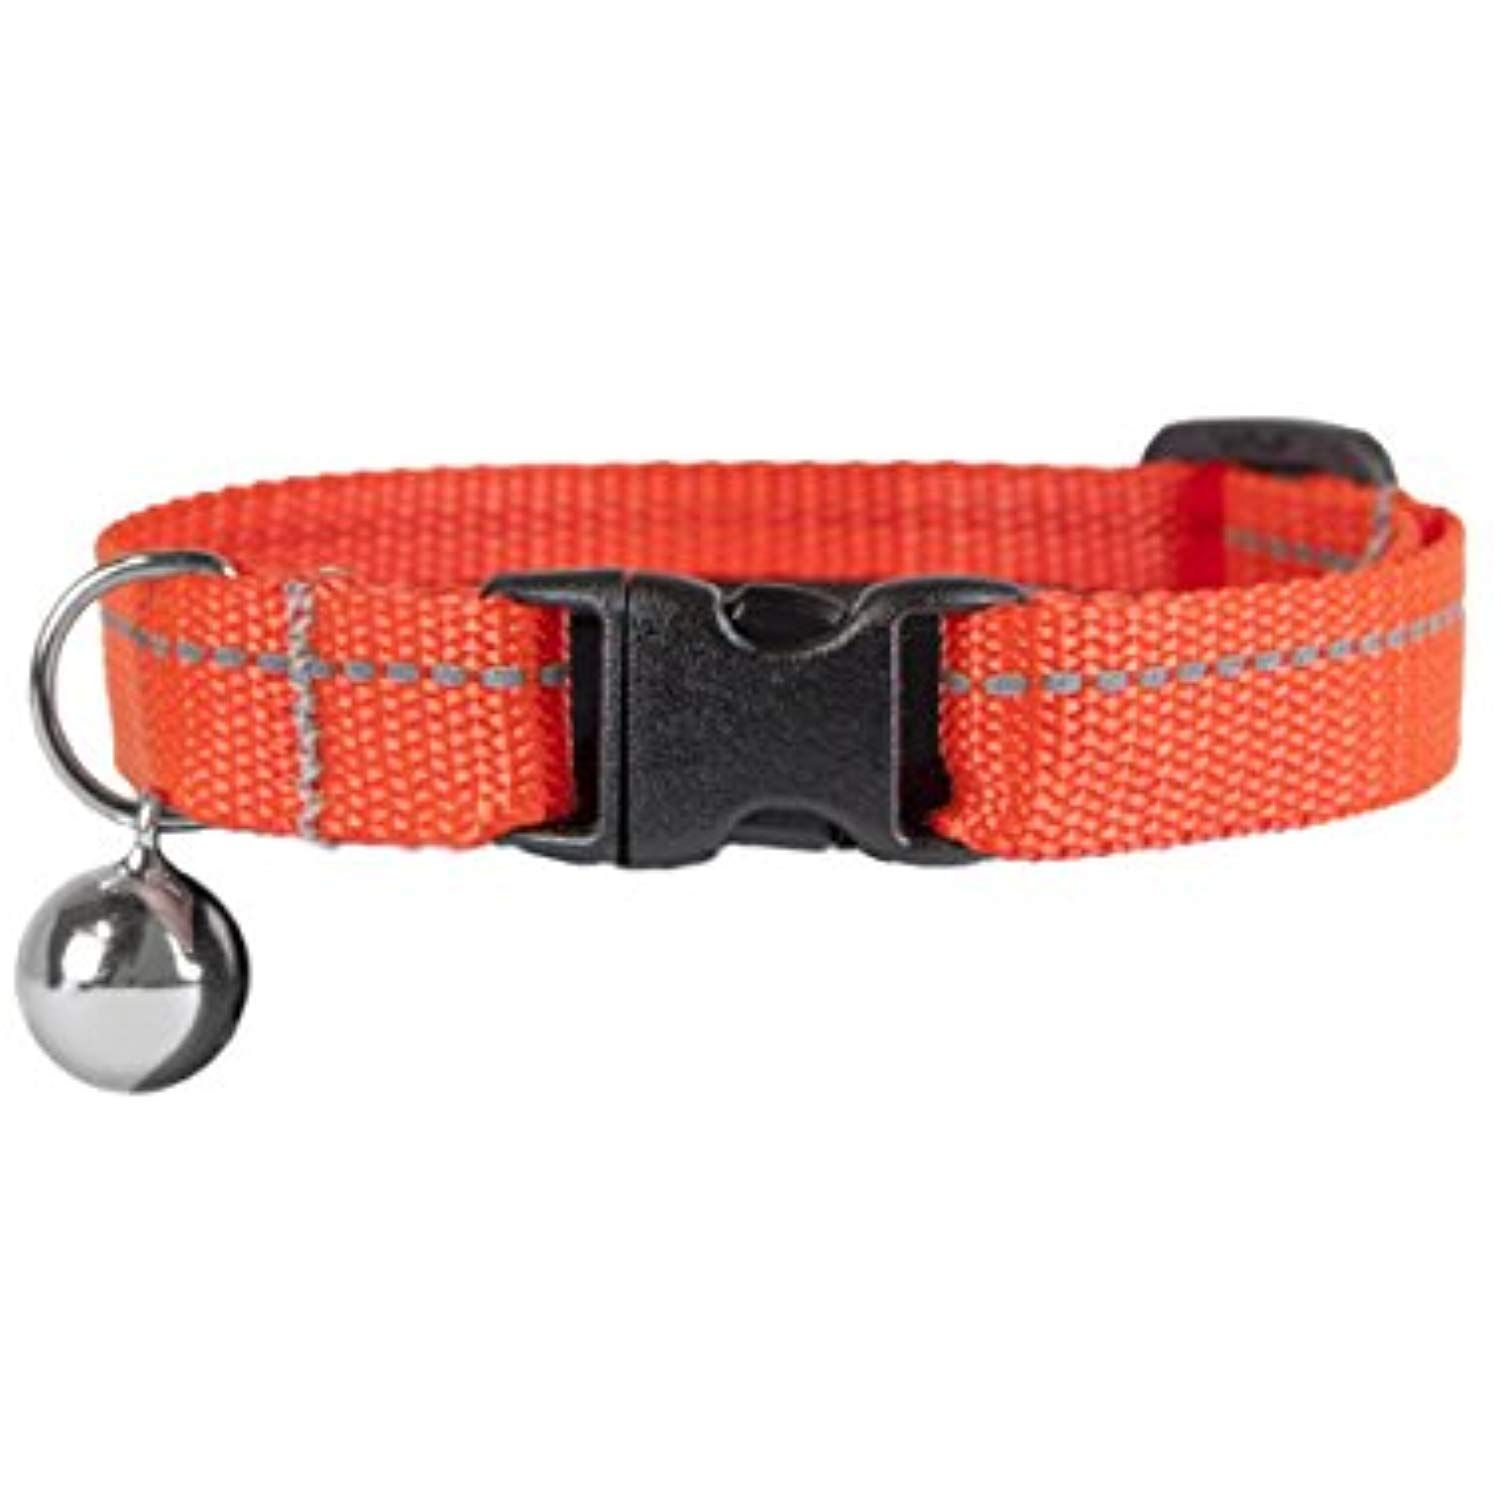 Rc Pet Products 1 2 Primary Collection Kitty Breakaway Cat Collar Orange To View Further For This Item Visit The Im Breakaway Cat Collars Cat Collars Pets